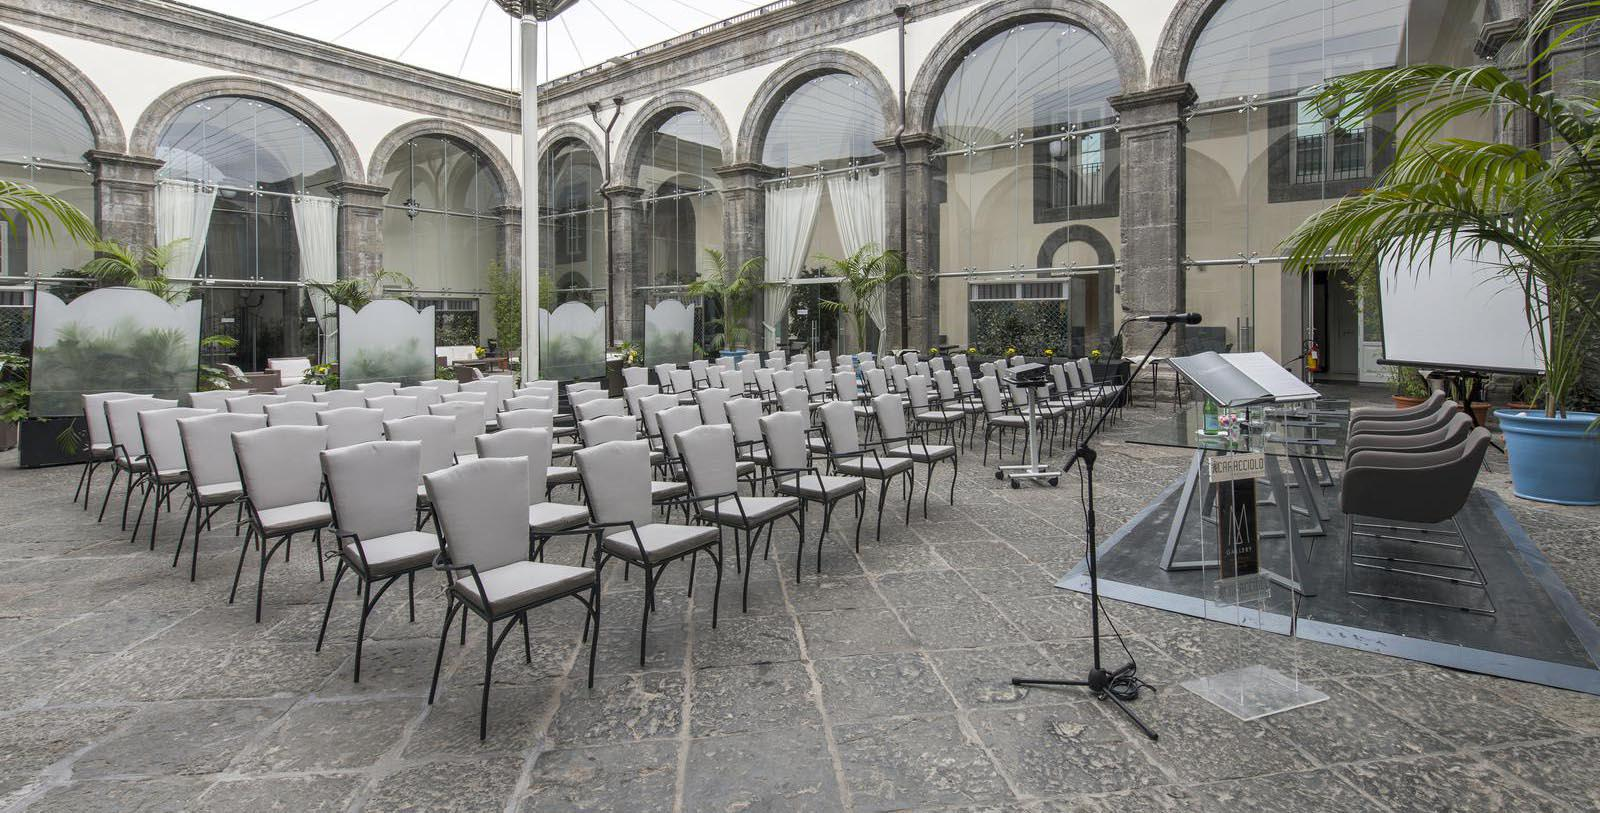 Image of Event Space Palazzo Caracciolo Napoli - MGallery by Sofitel, 1584, Member of Historic Hotels Worldwide, in Naples, Italy, Explore